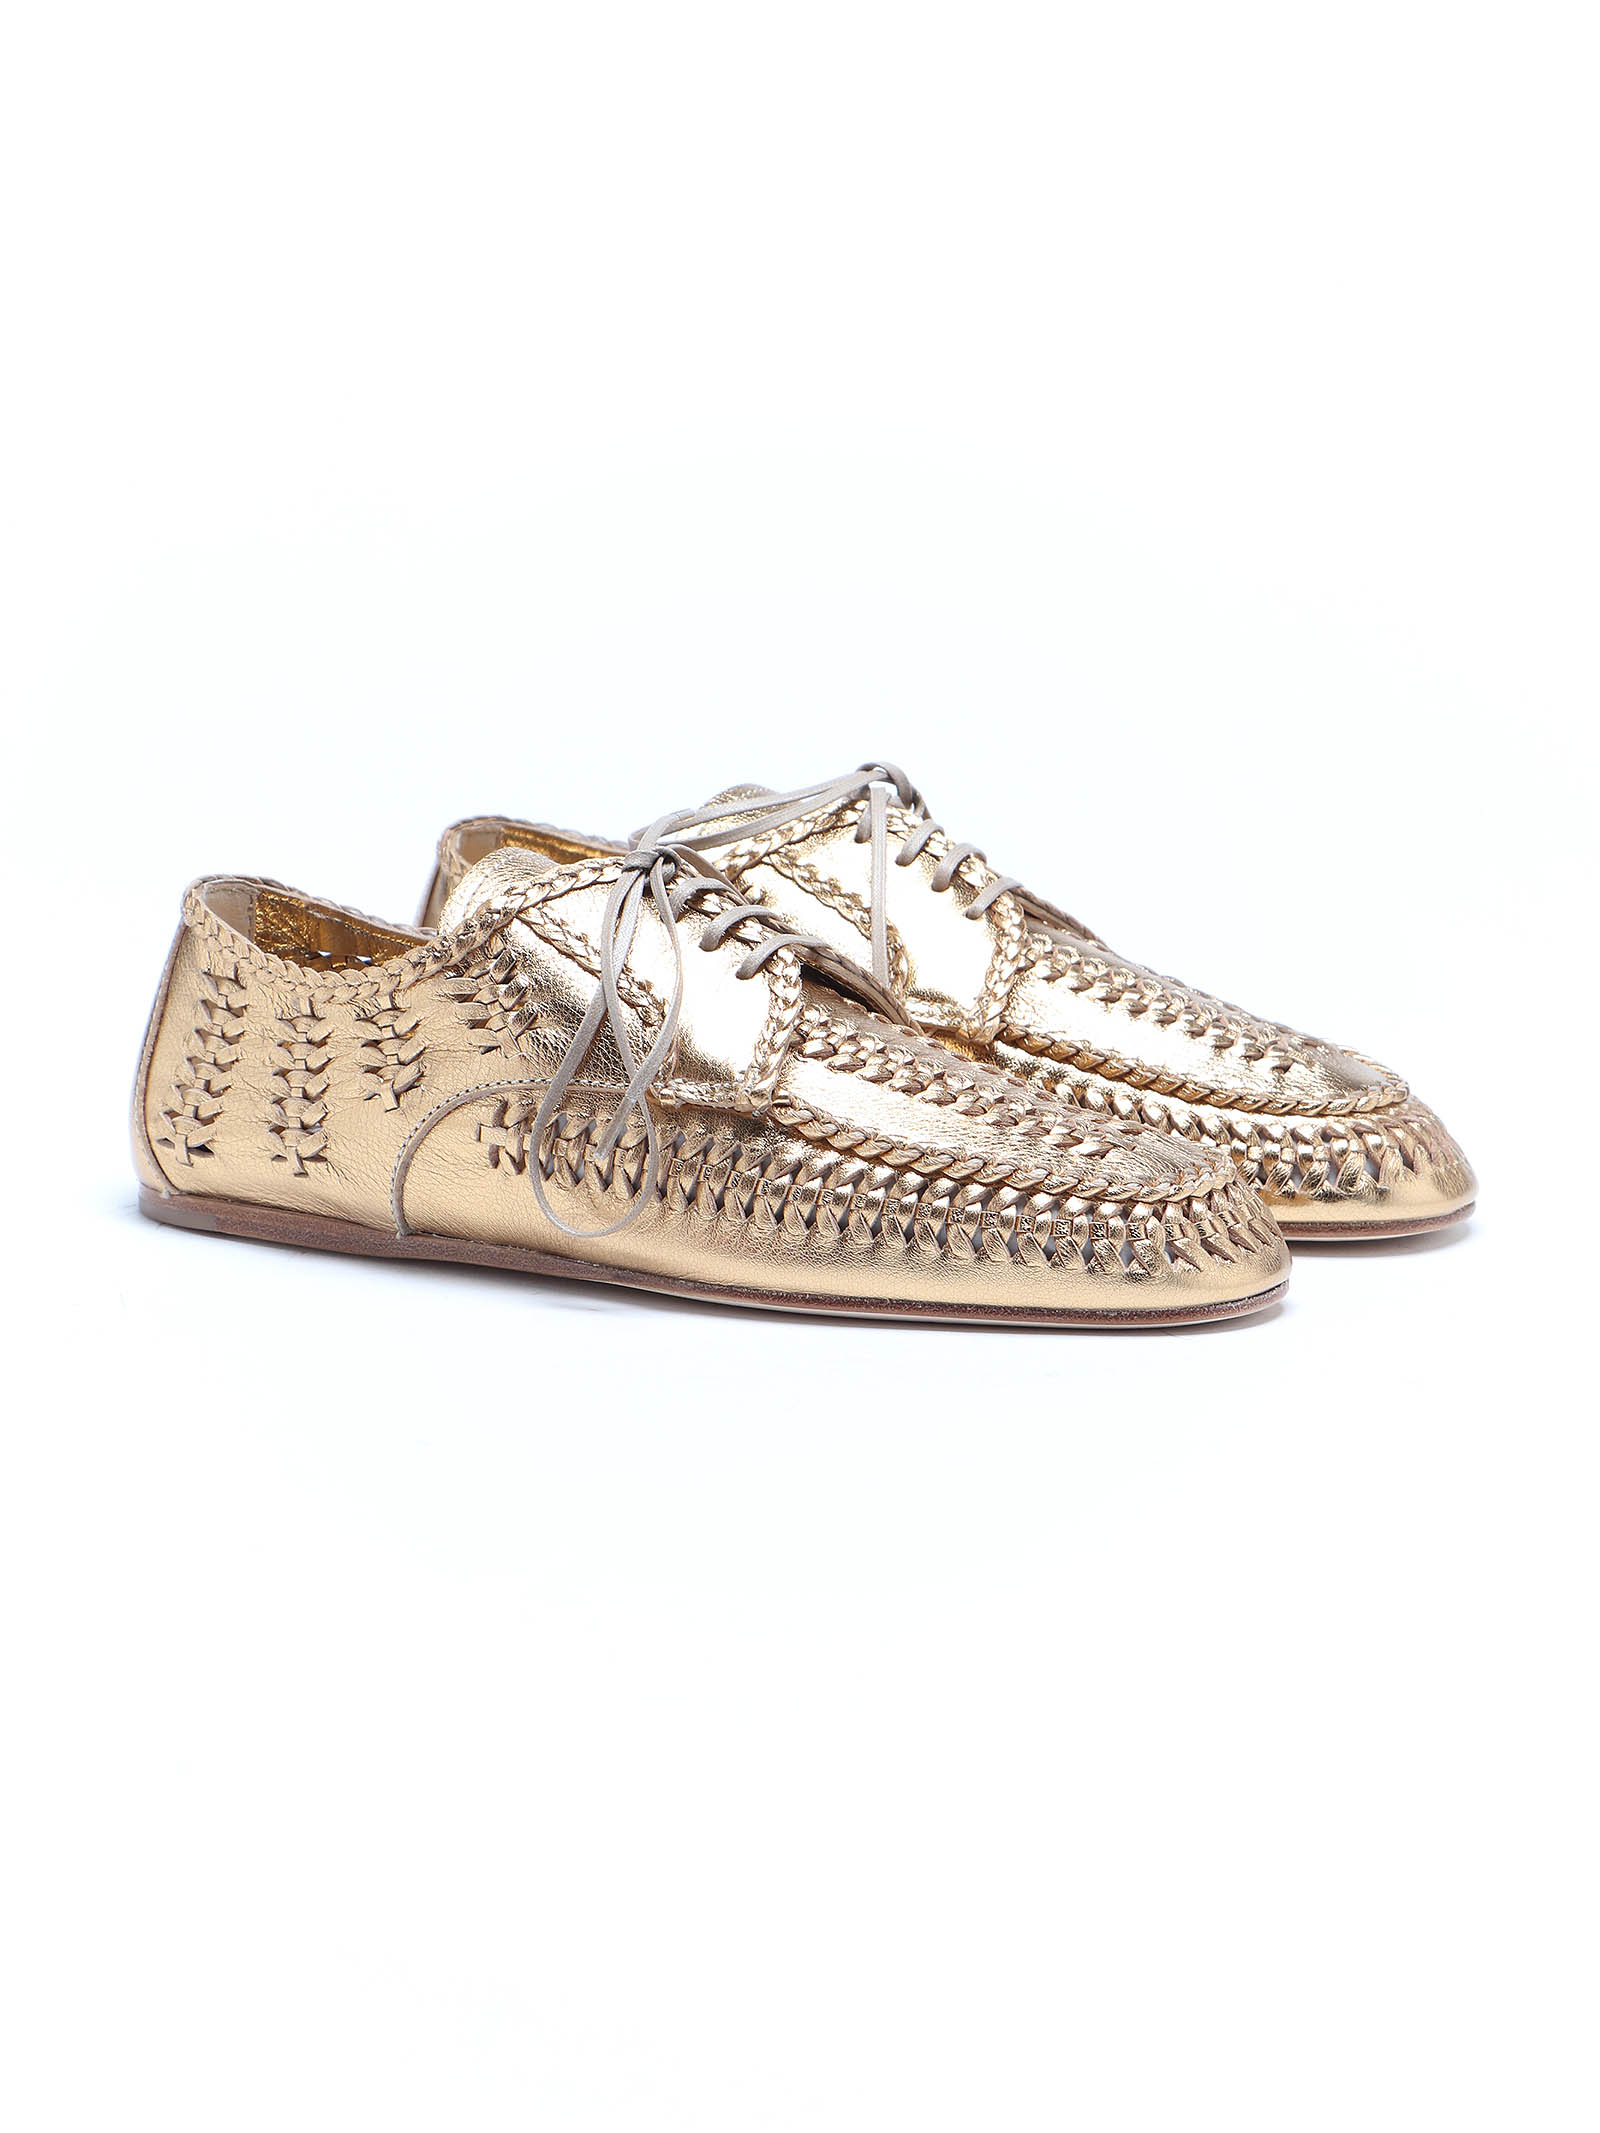 Picture of Prada   Lace Up Shoes